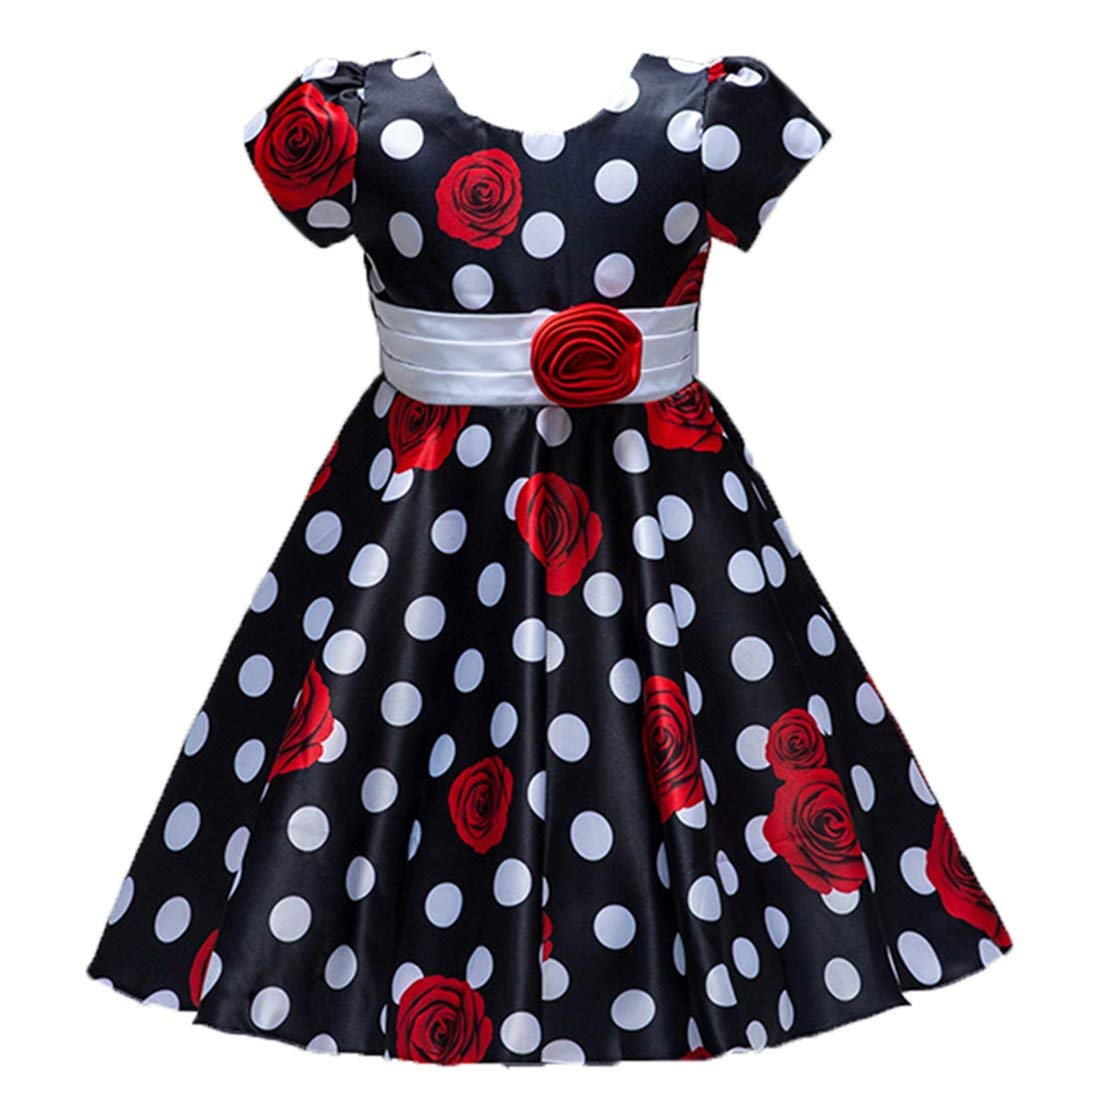 6014ed62cf9 Get Quotations · ADHS Big Girl Flower Wedding Party Prom Gowns Special  Occasion Polka Dot Dress